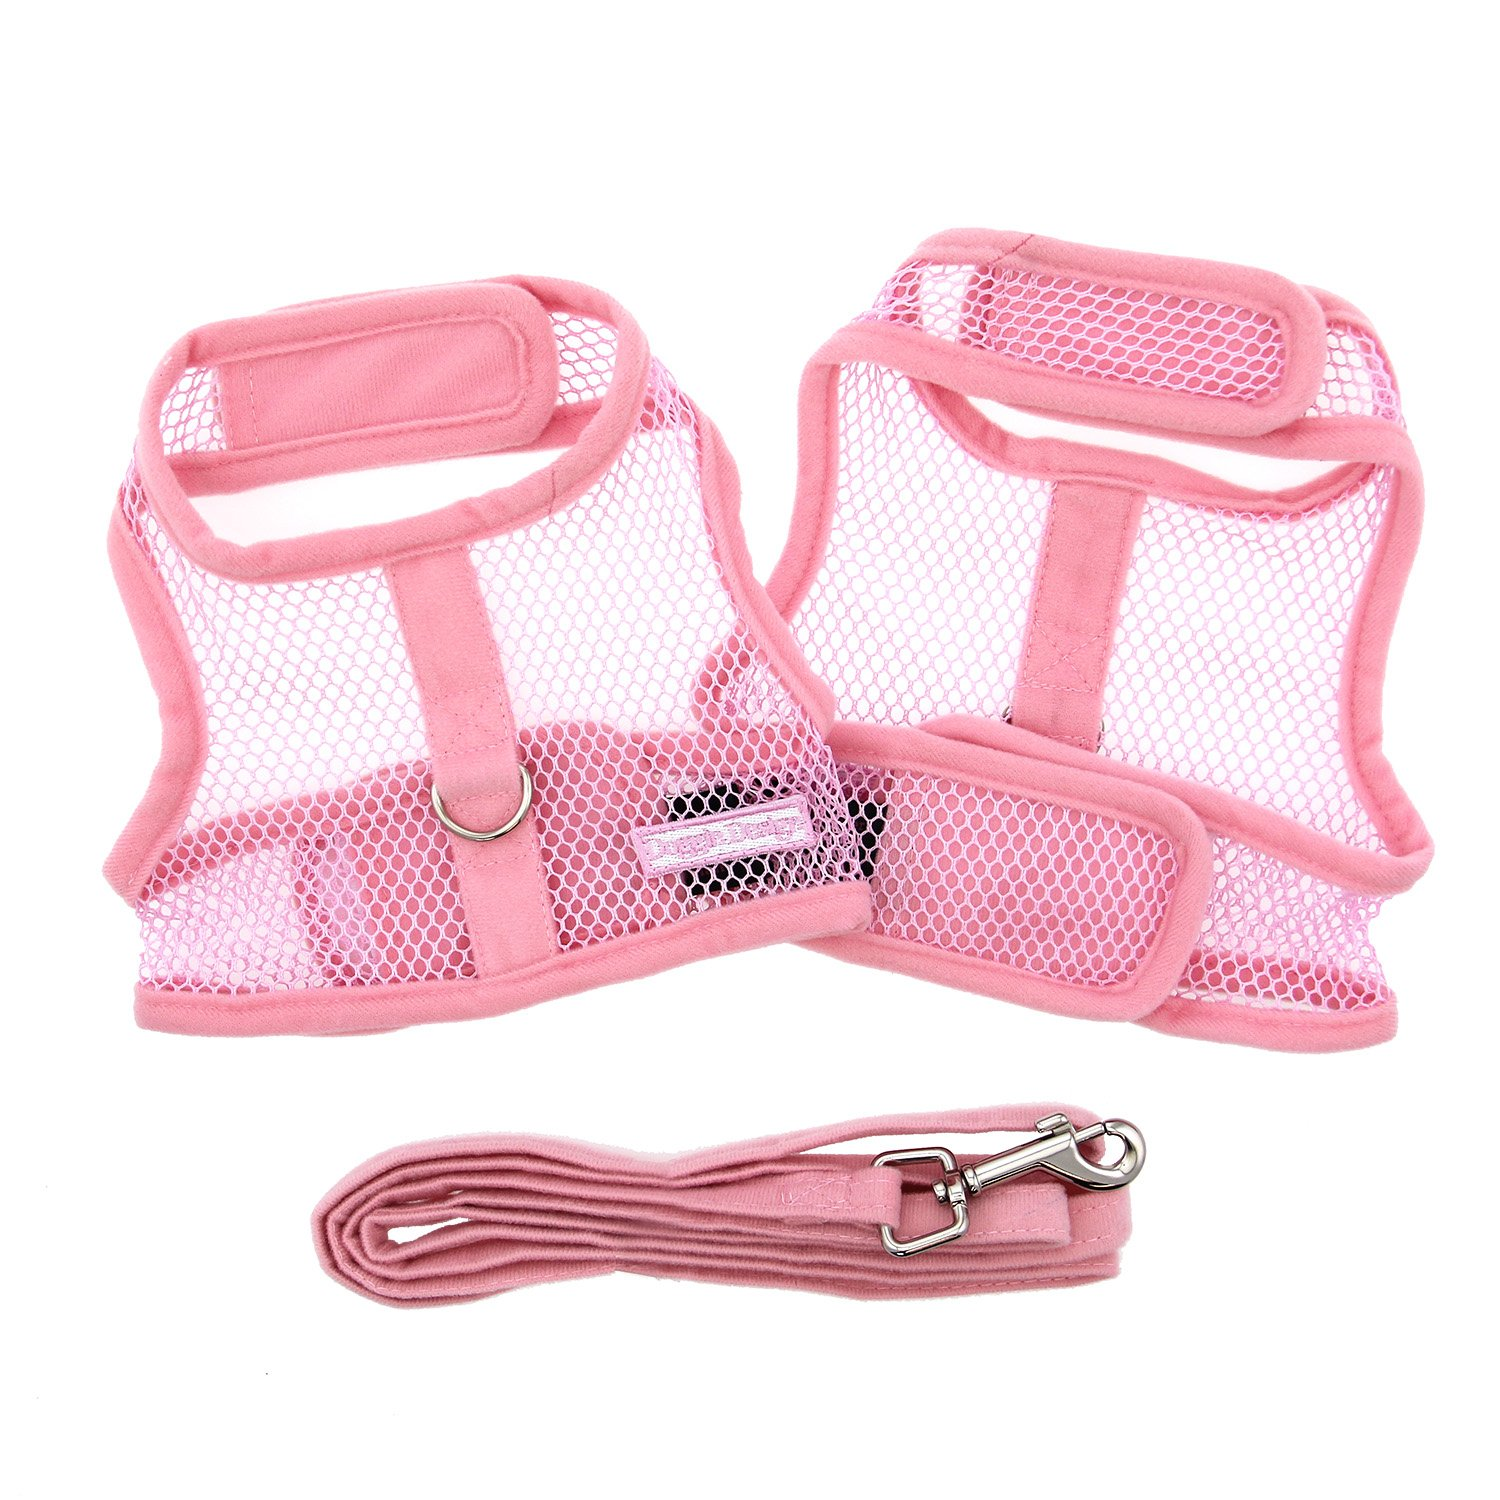 Cute Pink Mesh Velcro Dog Harness with Leash at Pet Stop Store